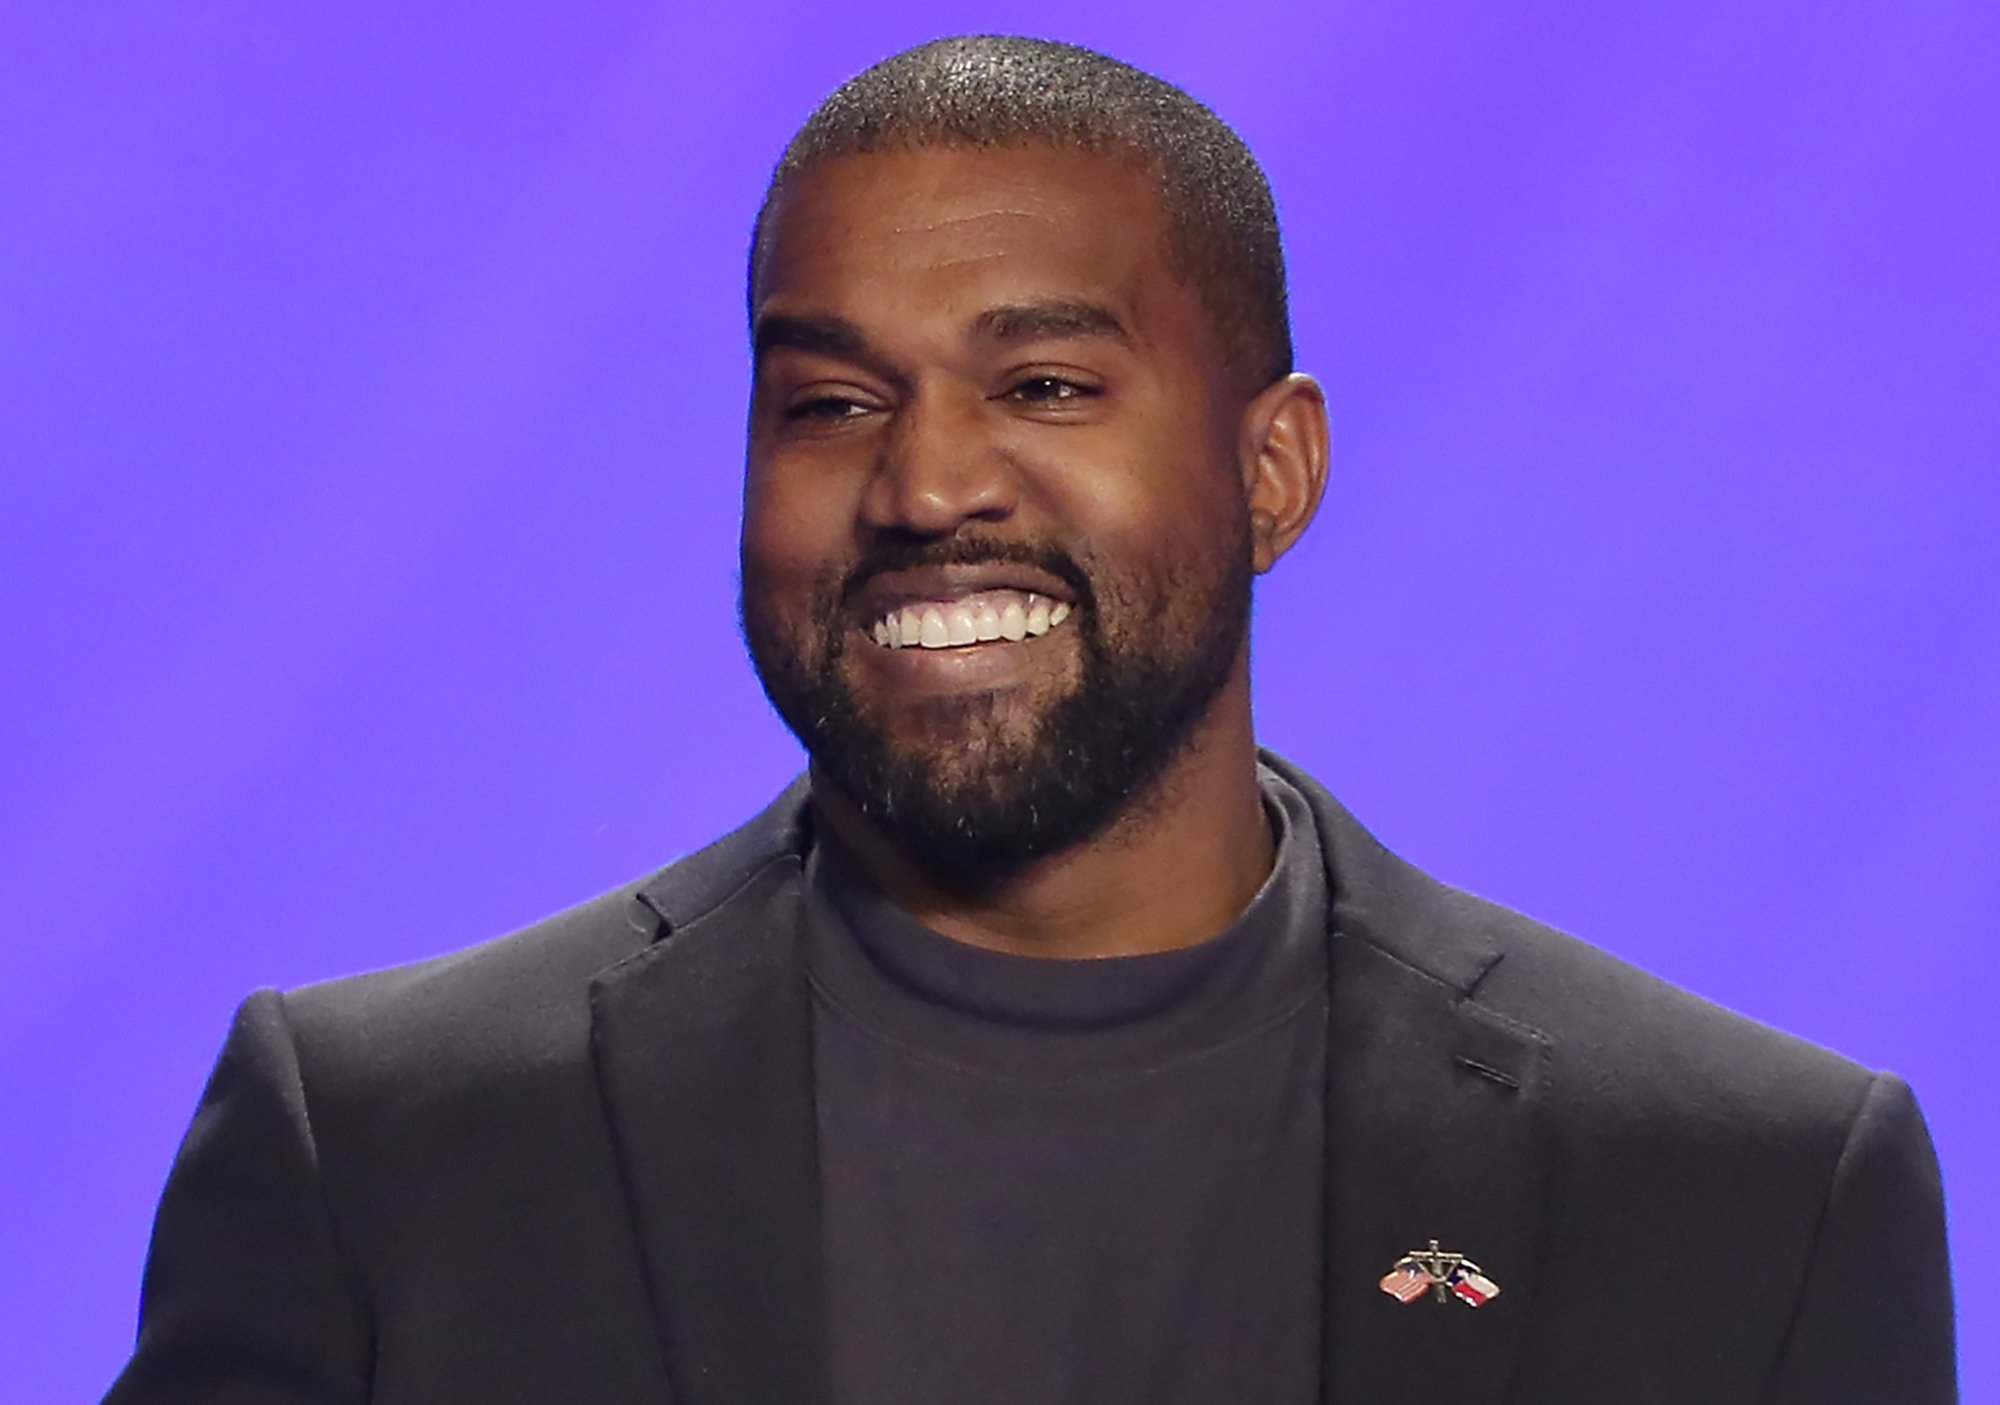 kanye-west-shares-his-first-campaign-ad-and-its-all-about-restoring-americas-faith